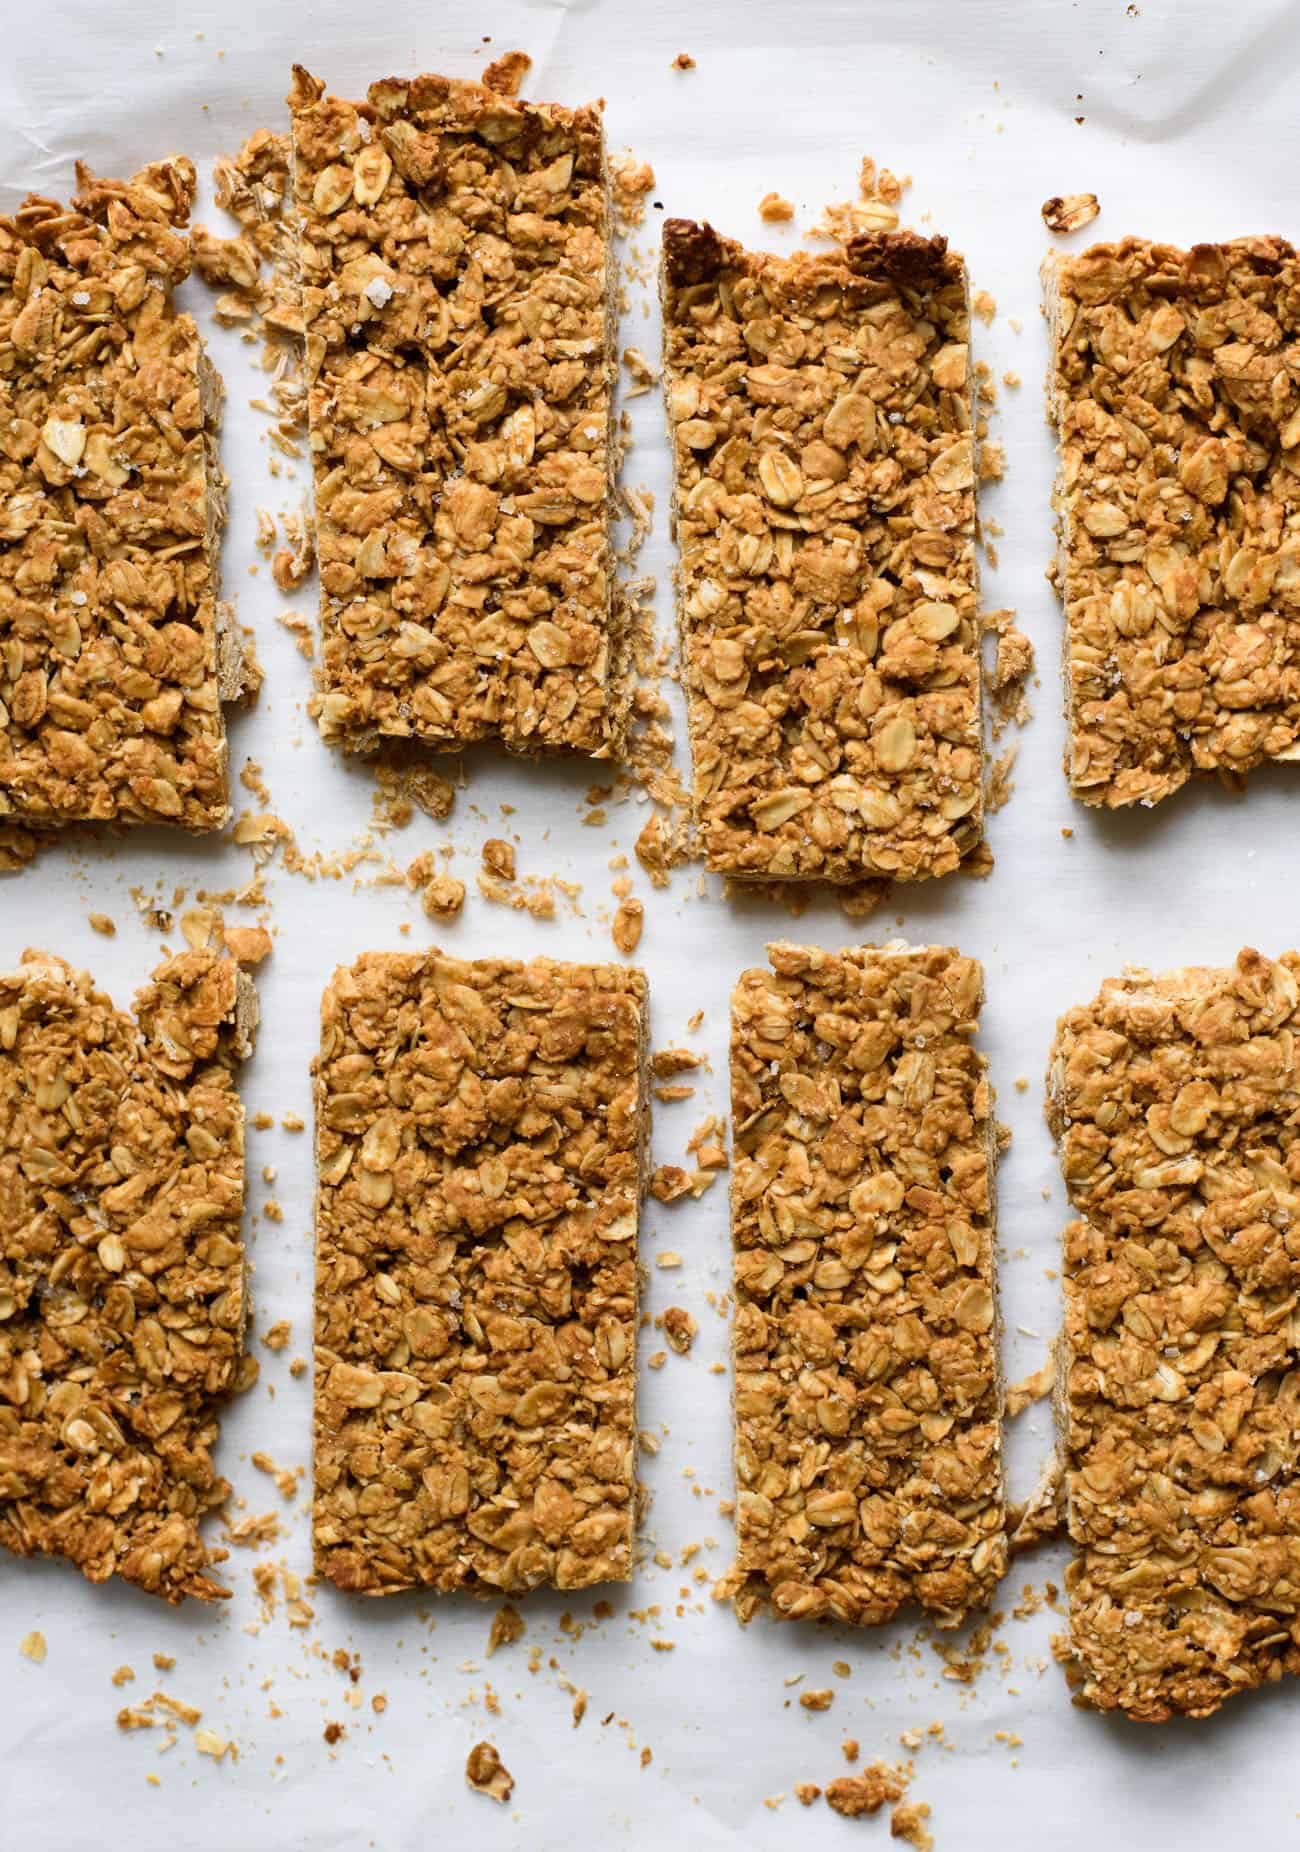 Baked crunchy peanut butter granola bars on parchment paper